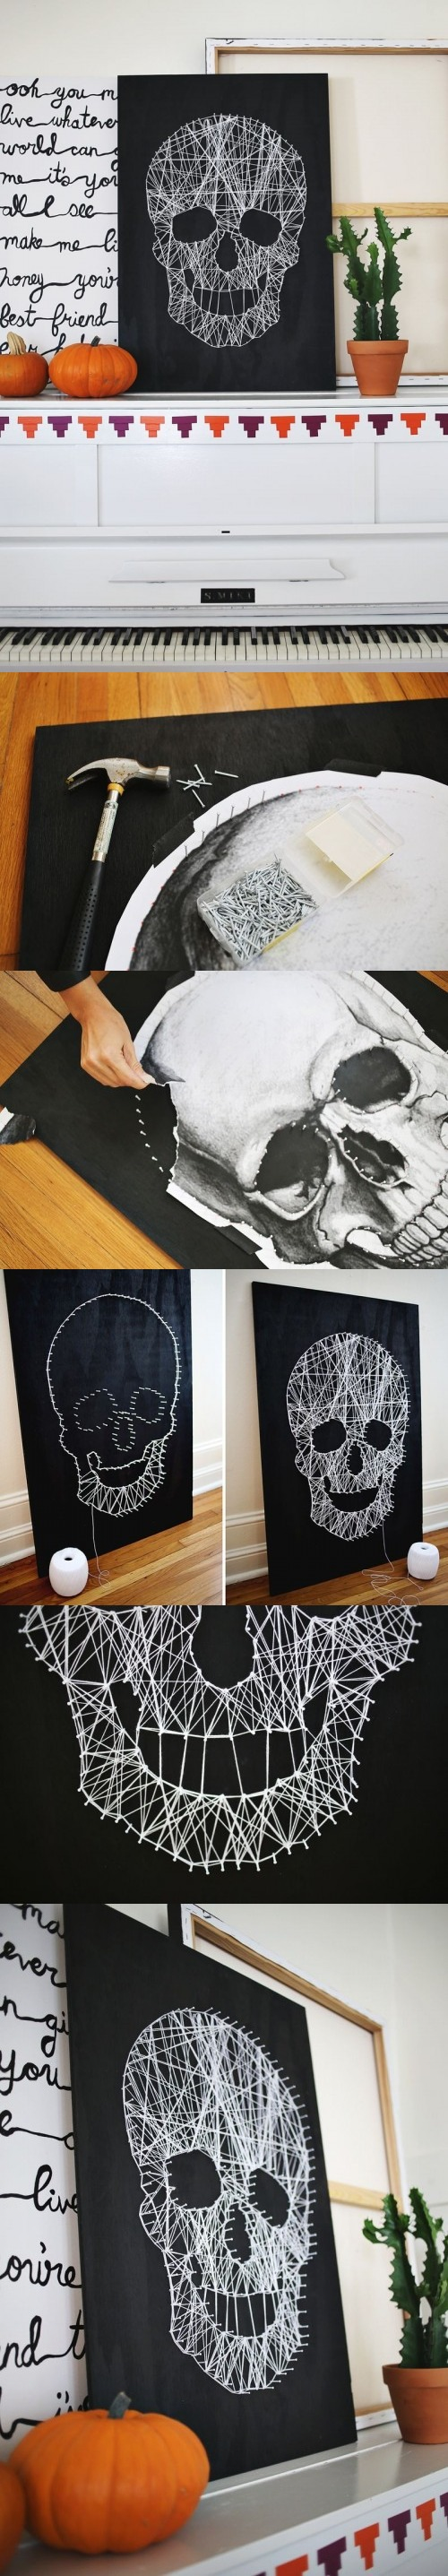 3. Black And White Skull String Art